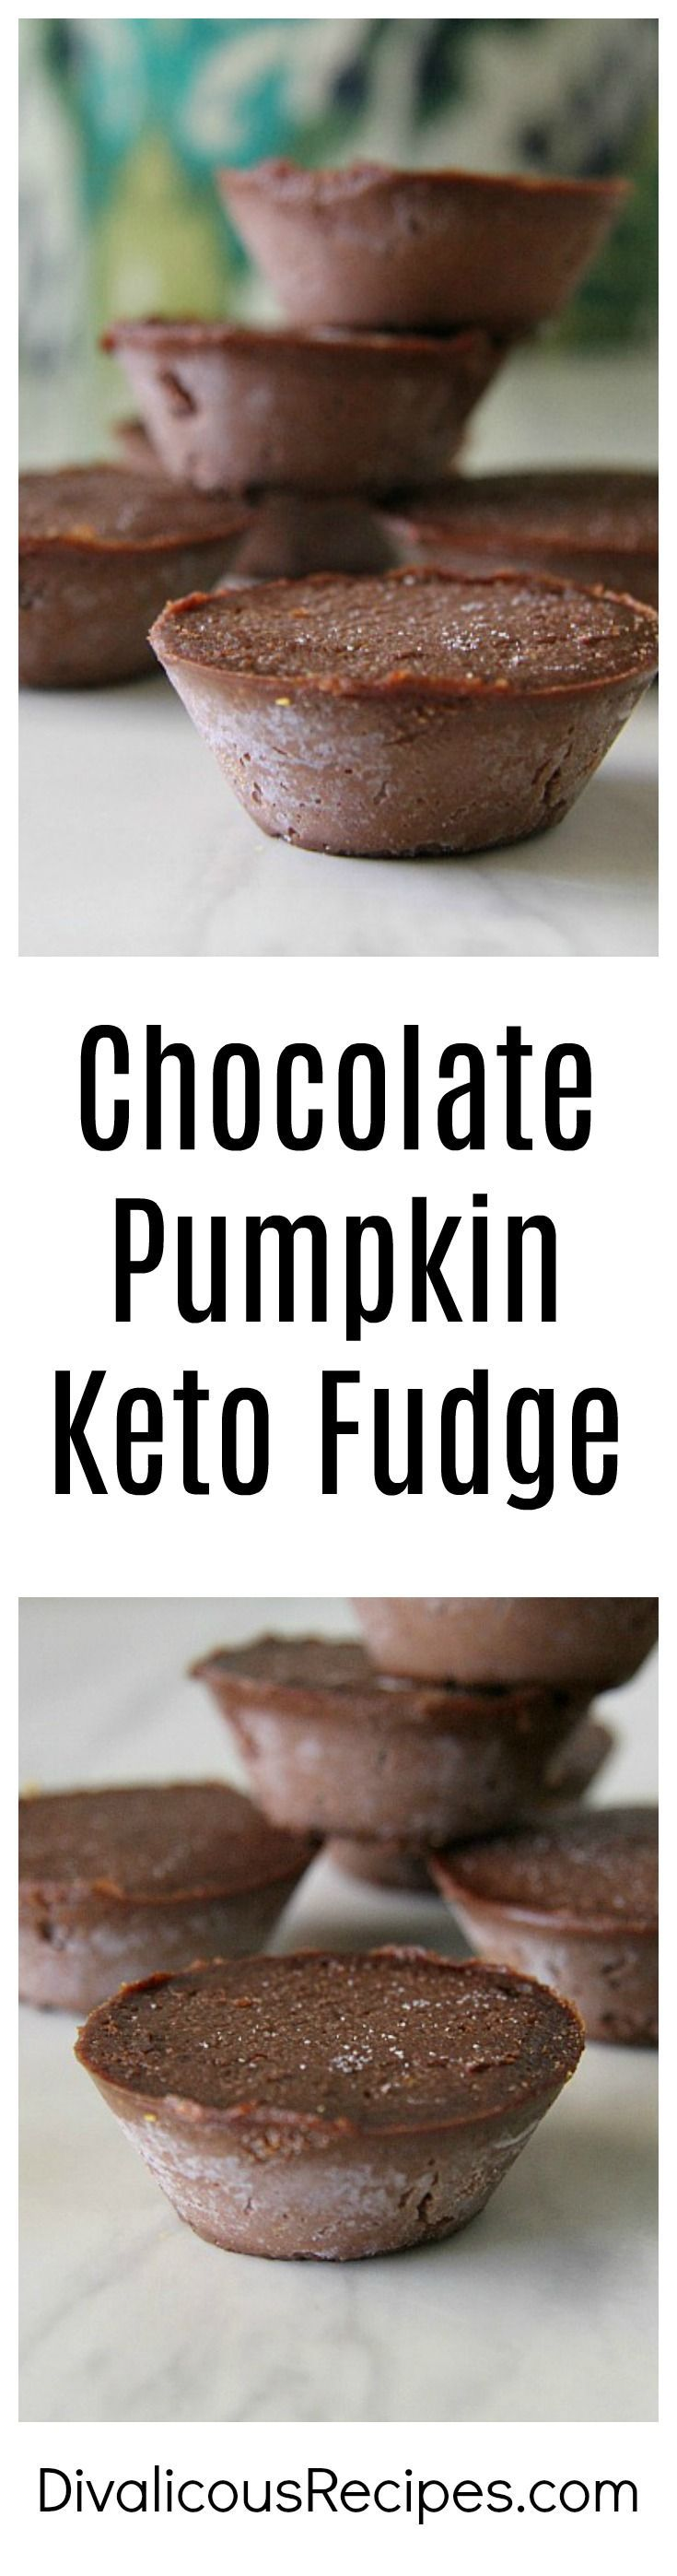 This chocolate pumpkin keto fudge is smooth and creamy as well as being easy to make.